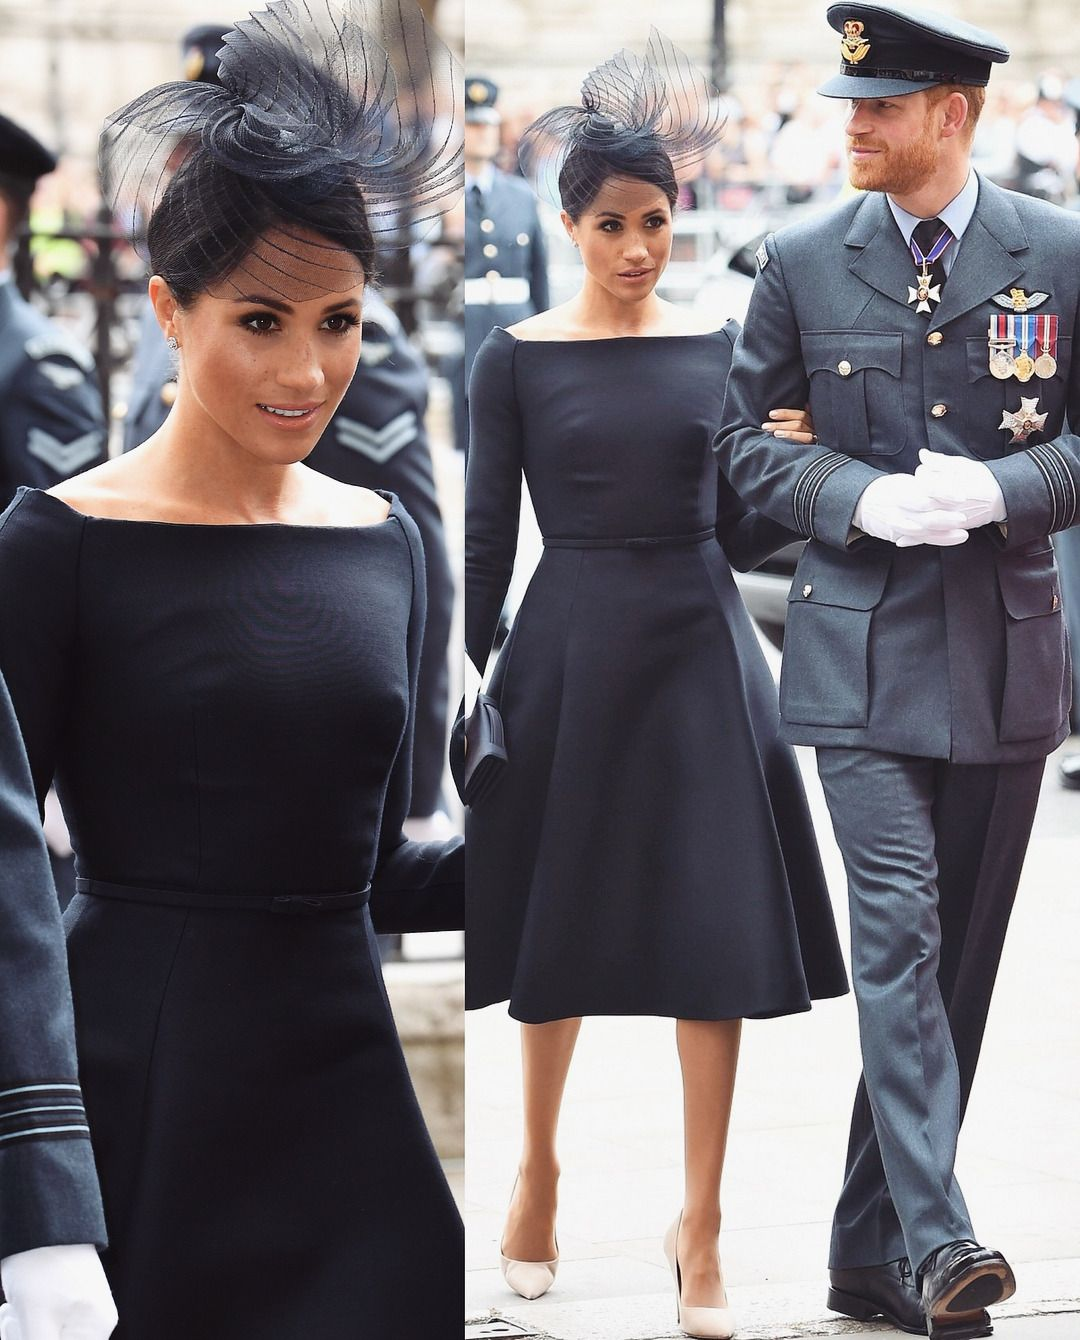 Meghan Markle In Black Knee Length Dress With Hat American Princess Givenchy Dress Gorgeous Black Dress